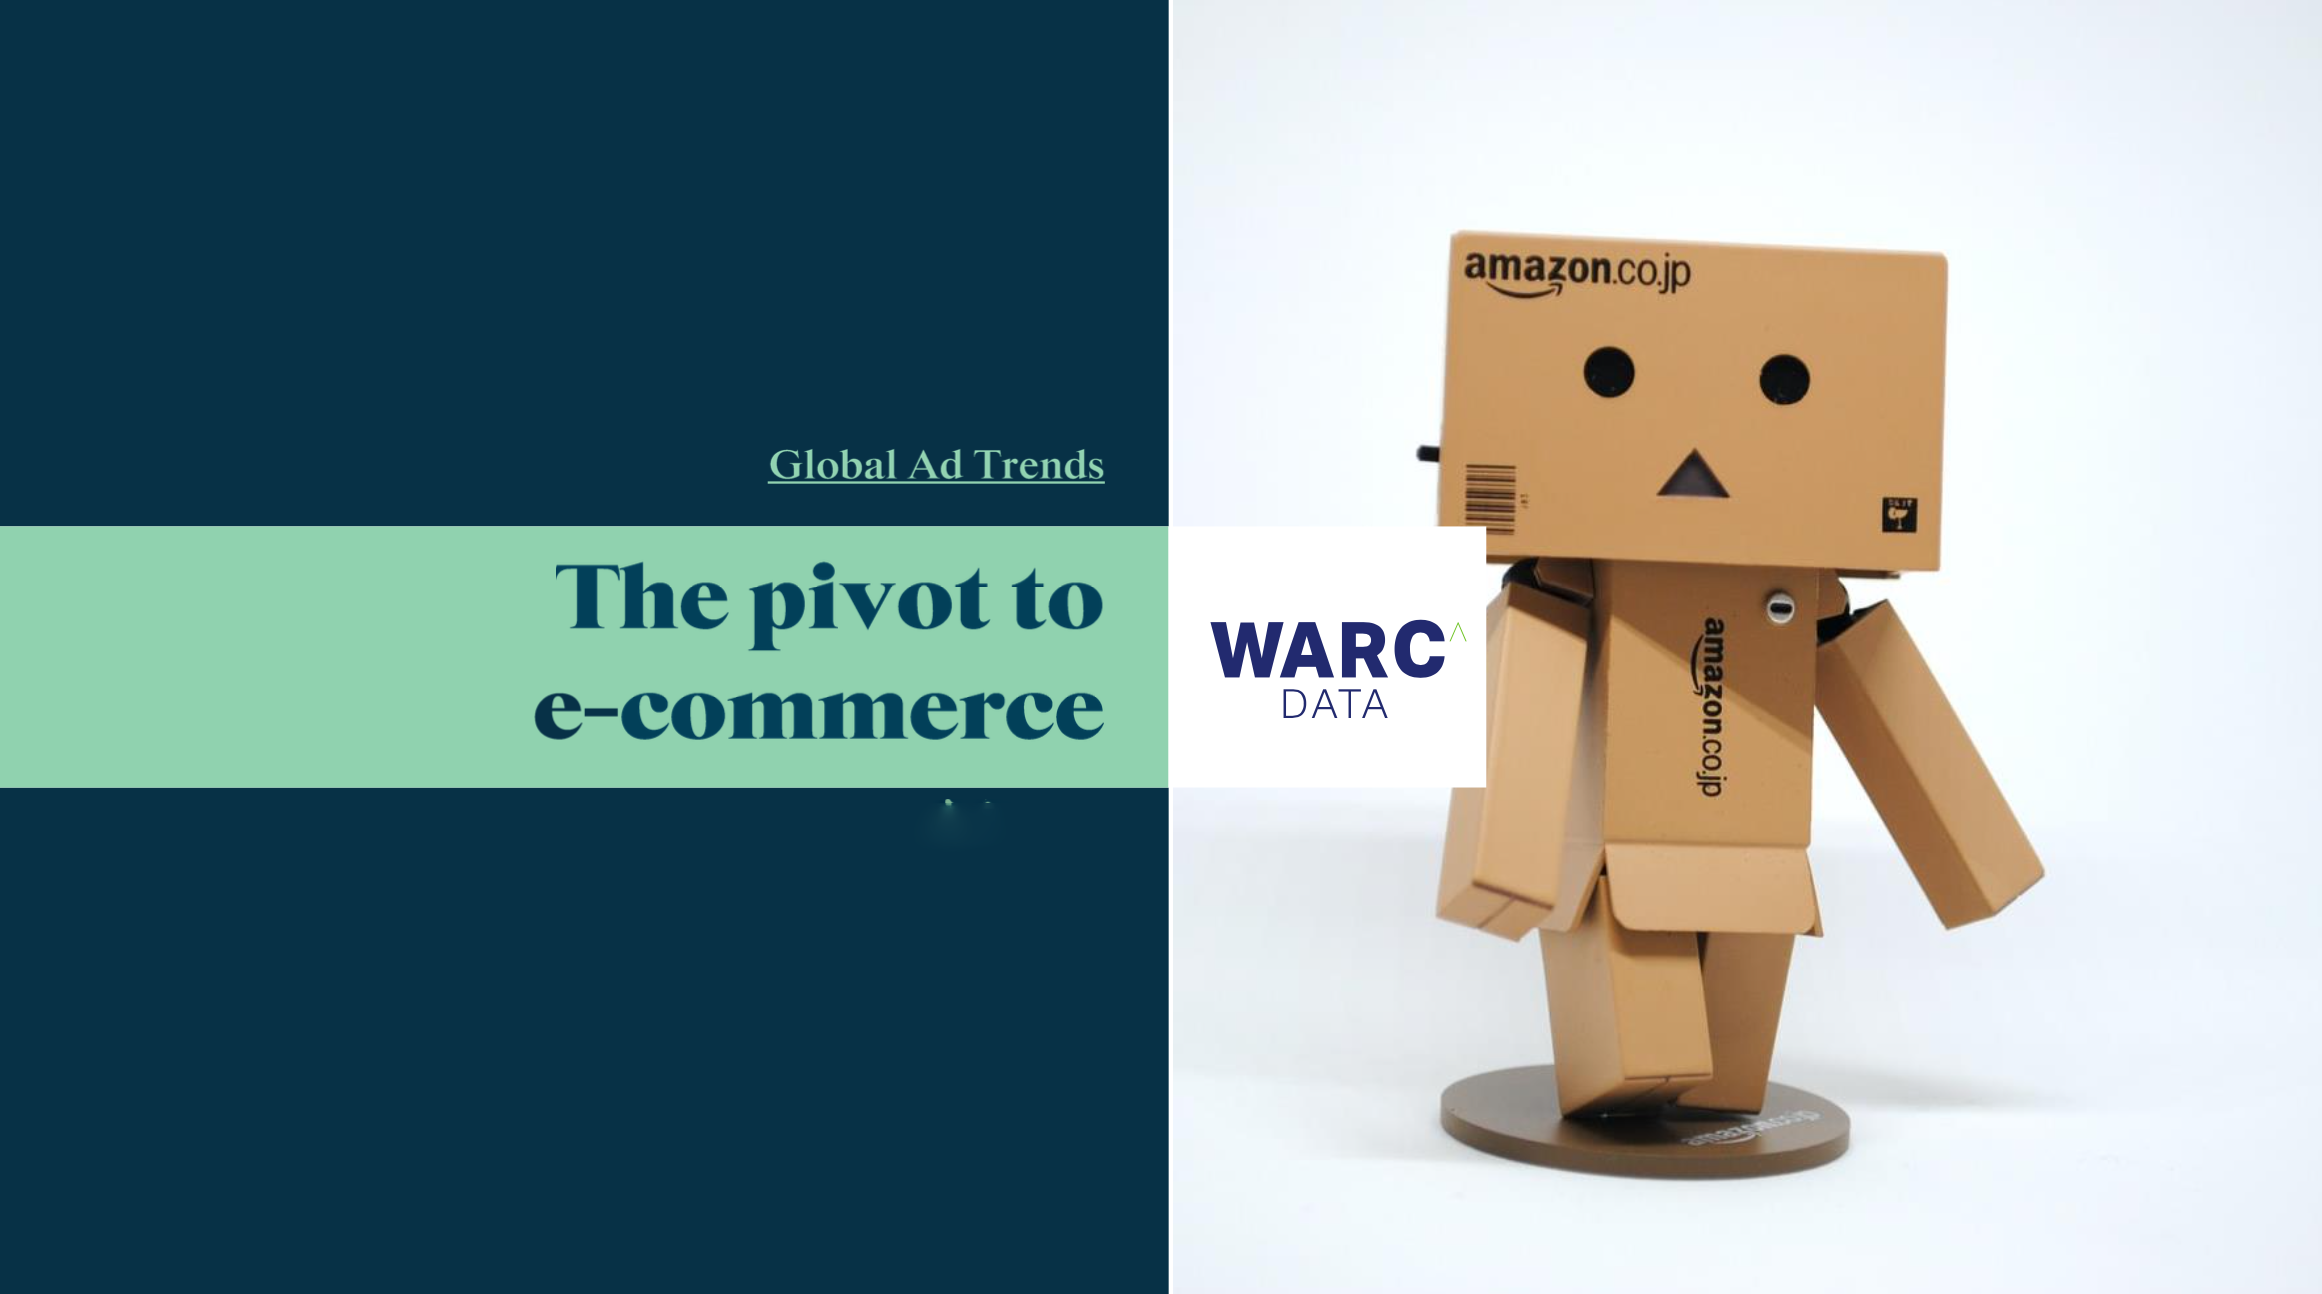 brands-will-spend-59bn-on-e-commerce-advertising-this-year